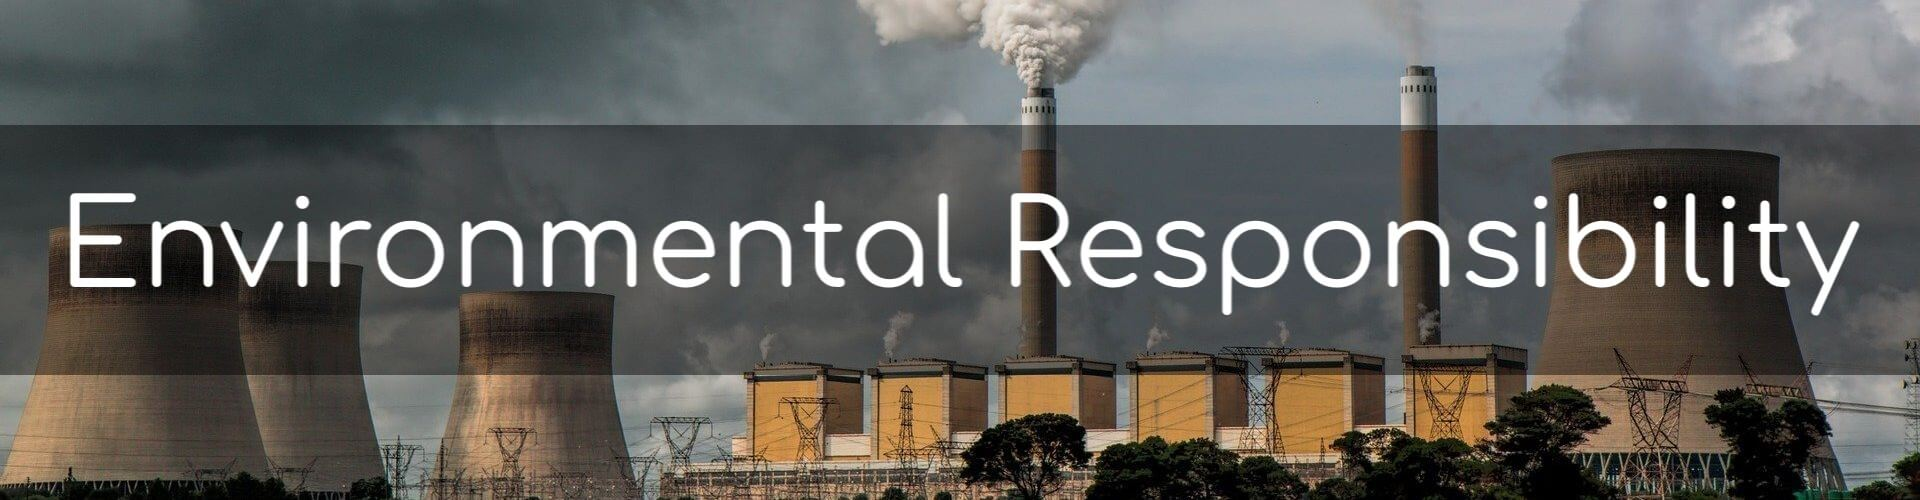 Environmental Responsibility. Image shows a power station belching smoke from chimneys.